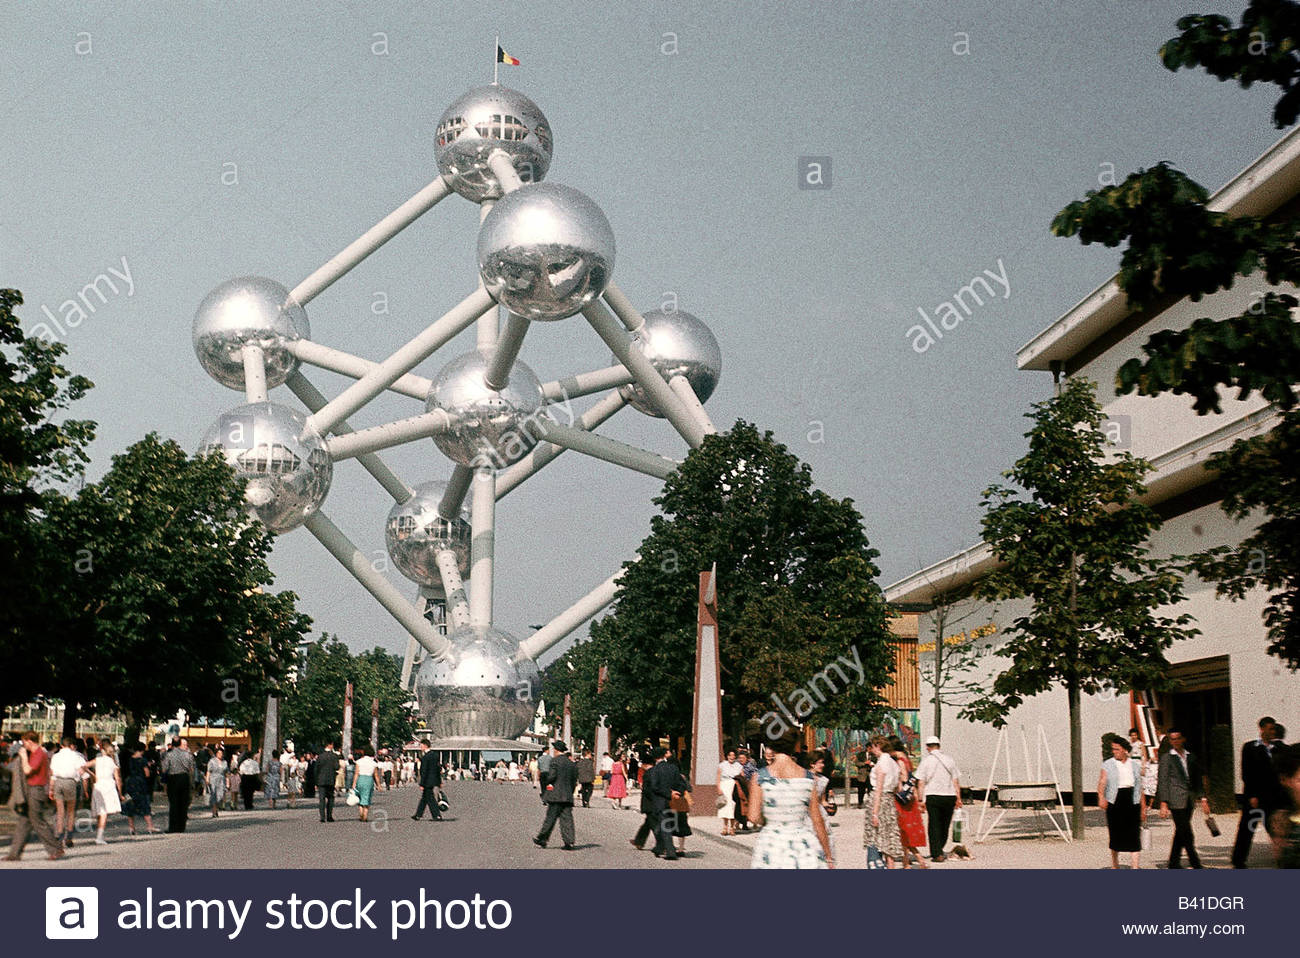 exhibition, world exposition, Atomium, Brussels, Belgium, 1958, Artist's Copyright must also be cleared Stock Photo